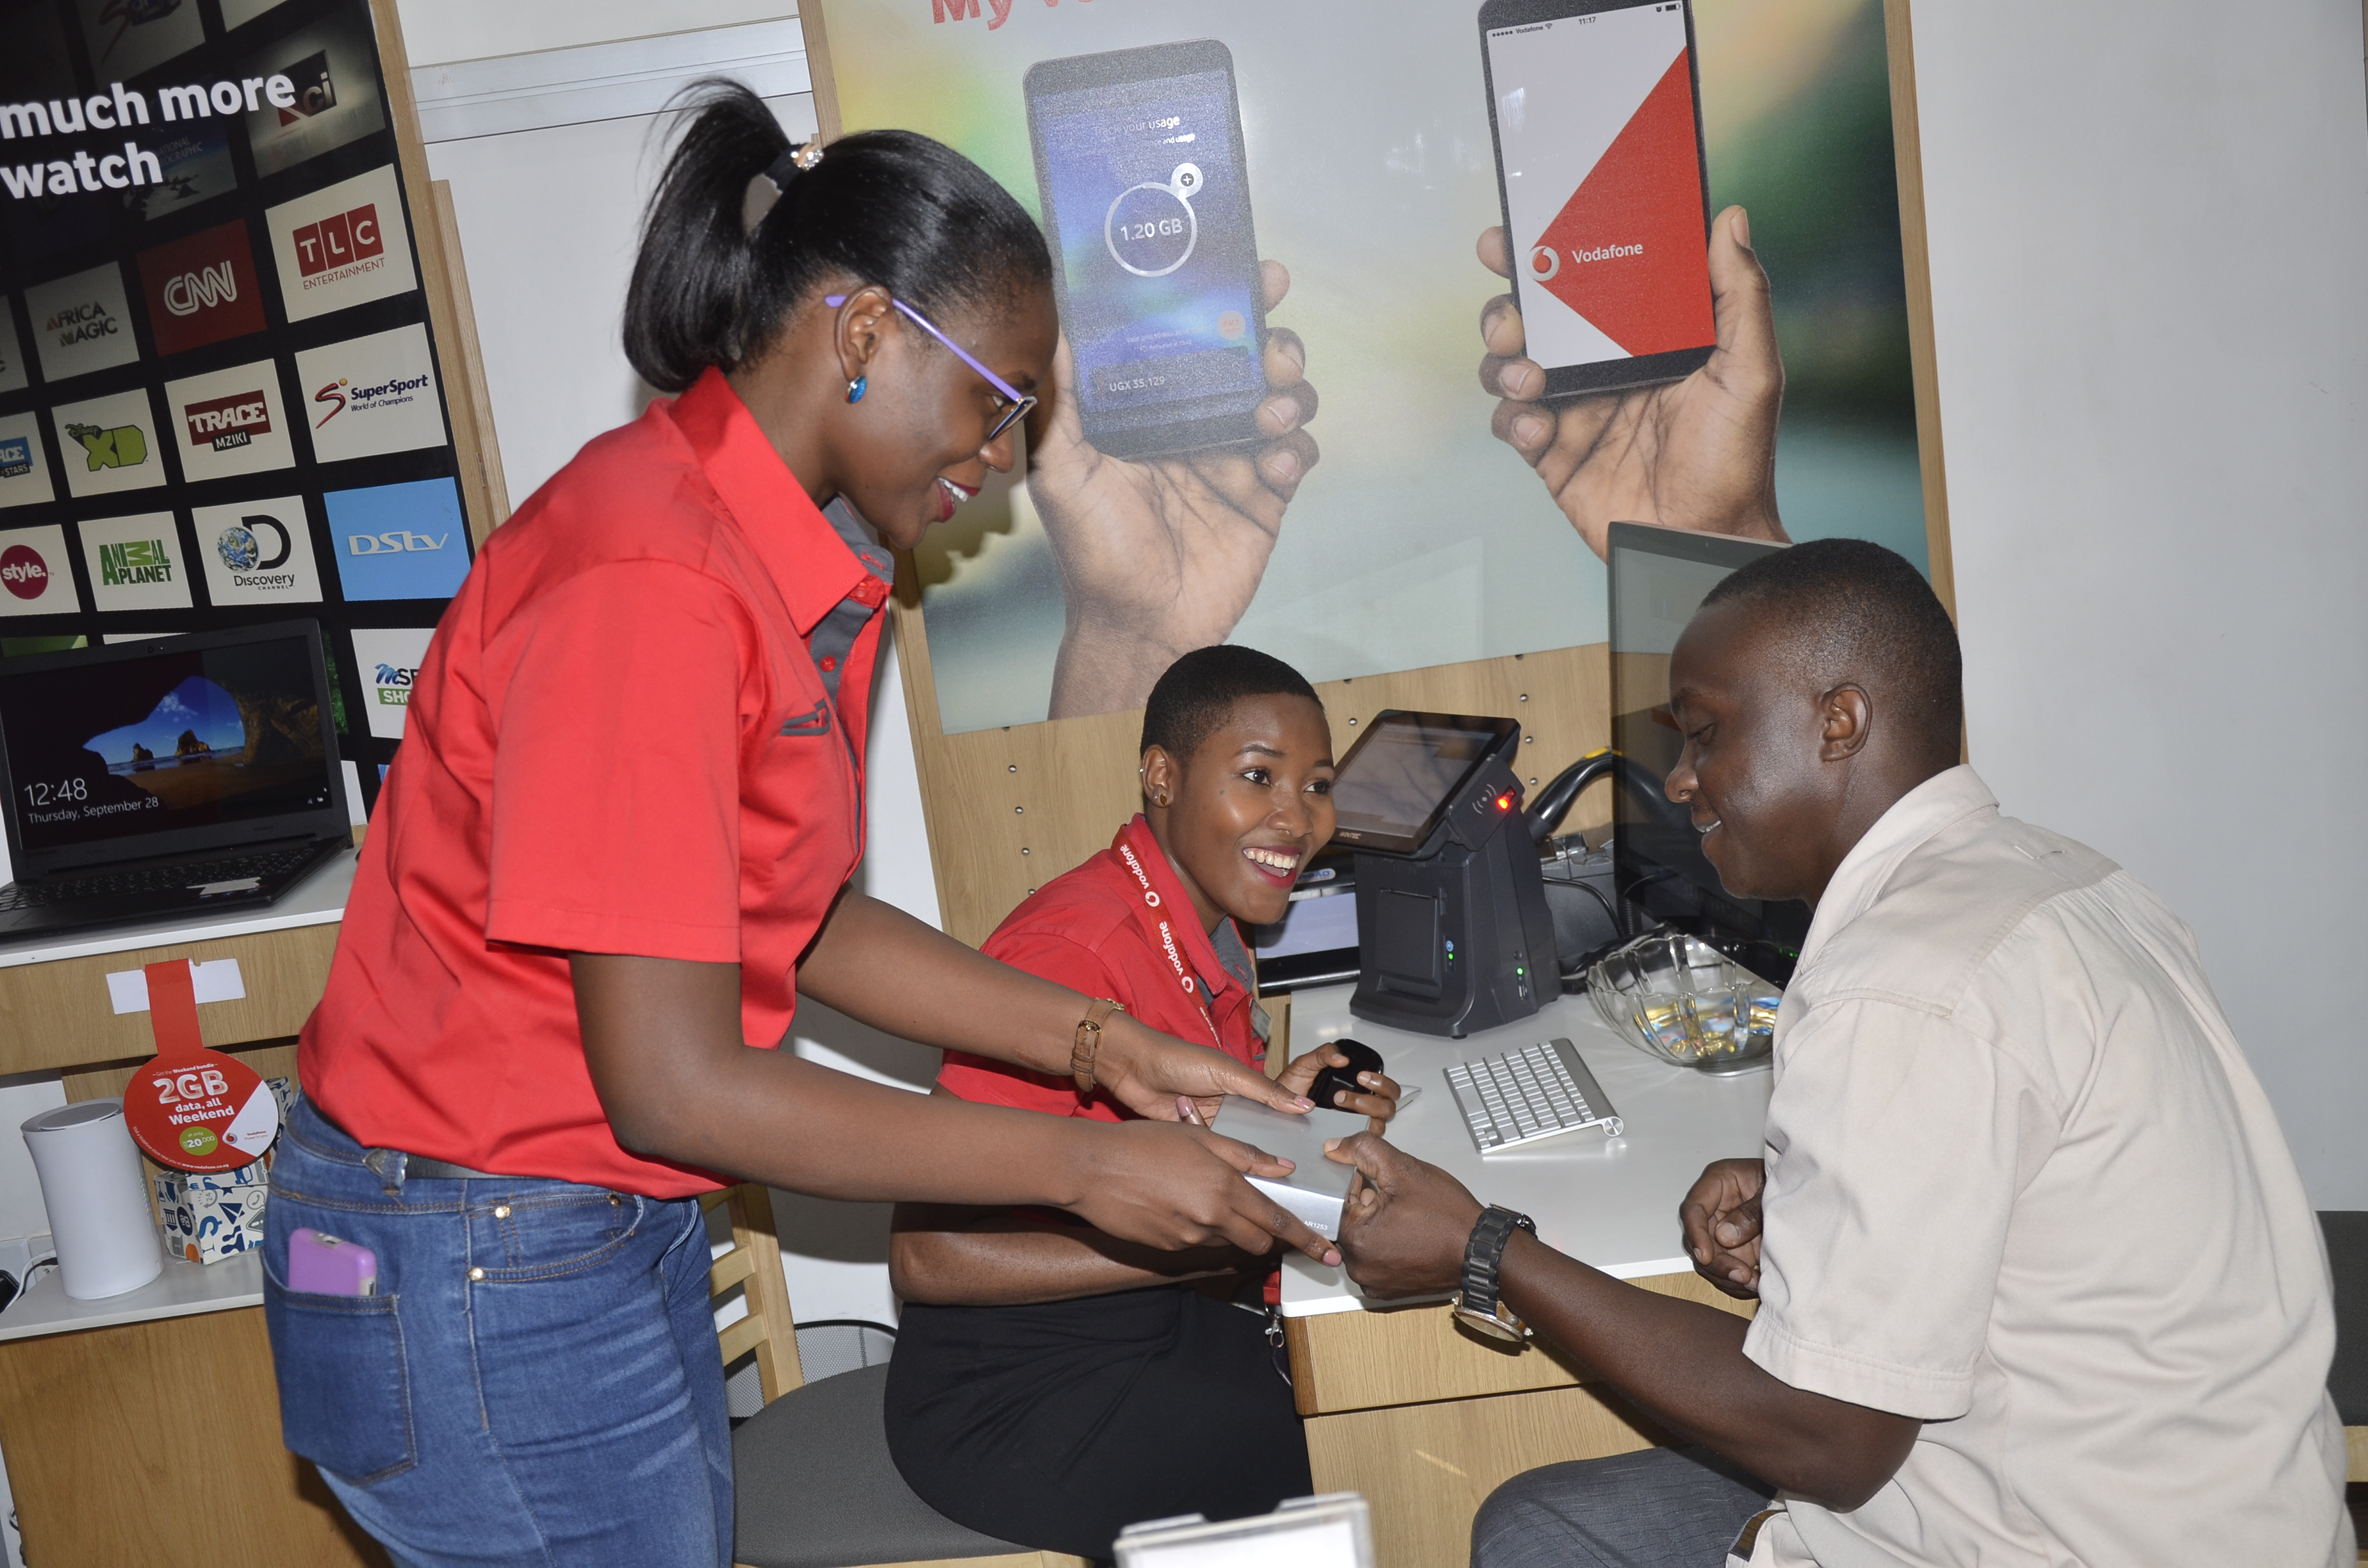 Vodafone customer Kisekka Roddy (right) receives a gift from Vodafone Financial Accountant Lucy Kabugho (left) while Retail Store Agent Stella Namakula (centre) smiles on at the Vodafone Shop on Luwum Street, Kampala  during Vodafone's Customer Service Week today. Vodafone is committed to putting its customers' needs first and adding value to them above everything else.